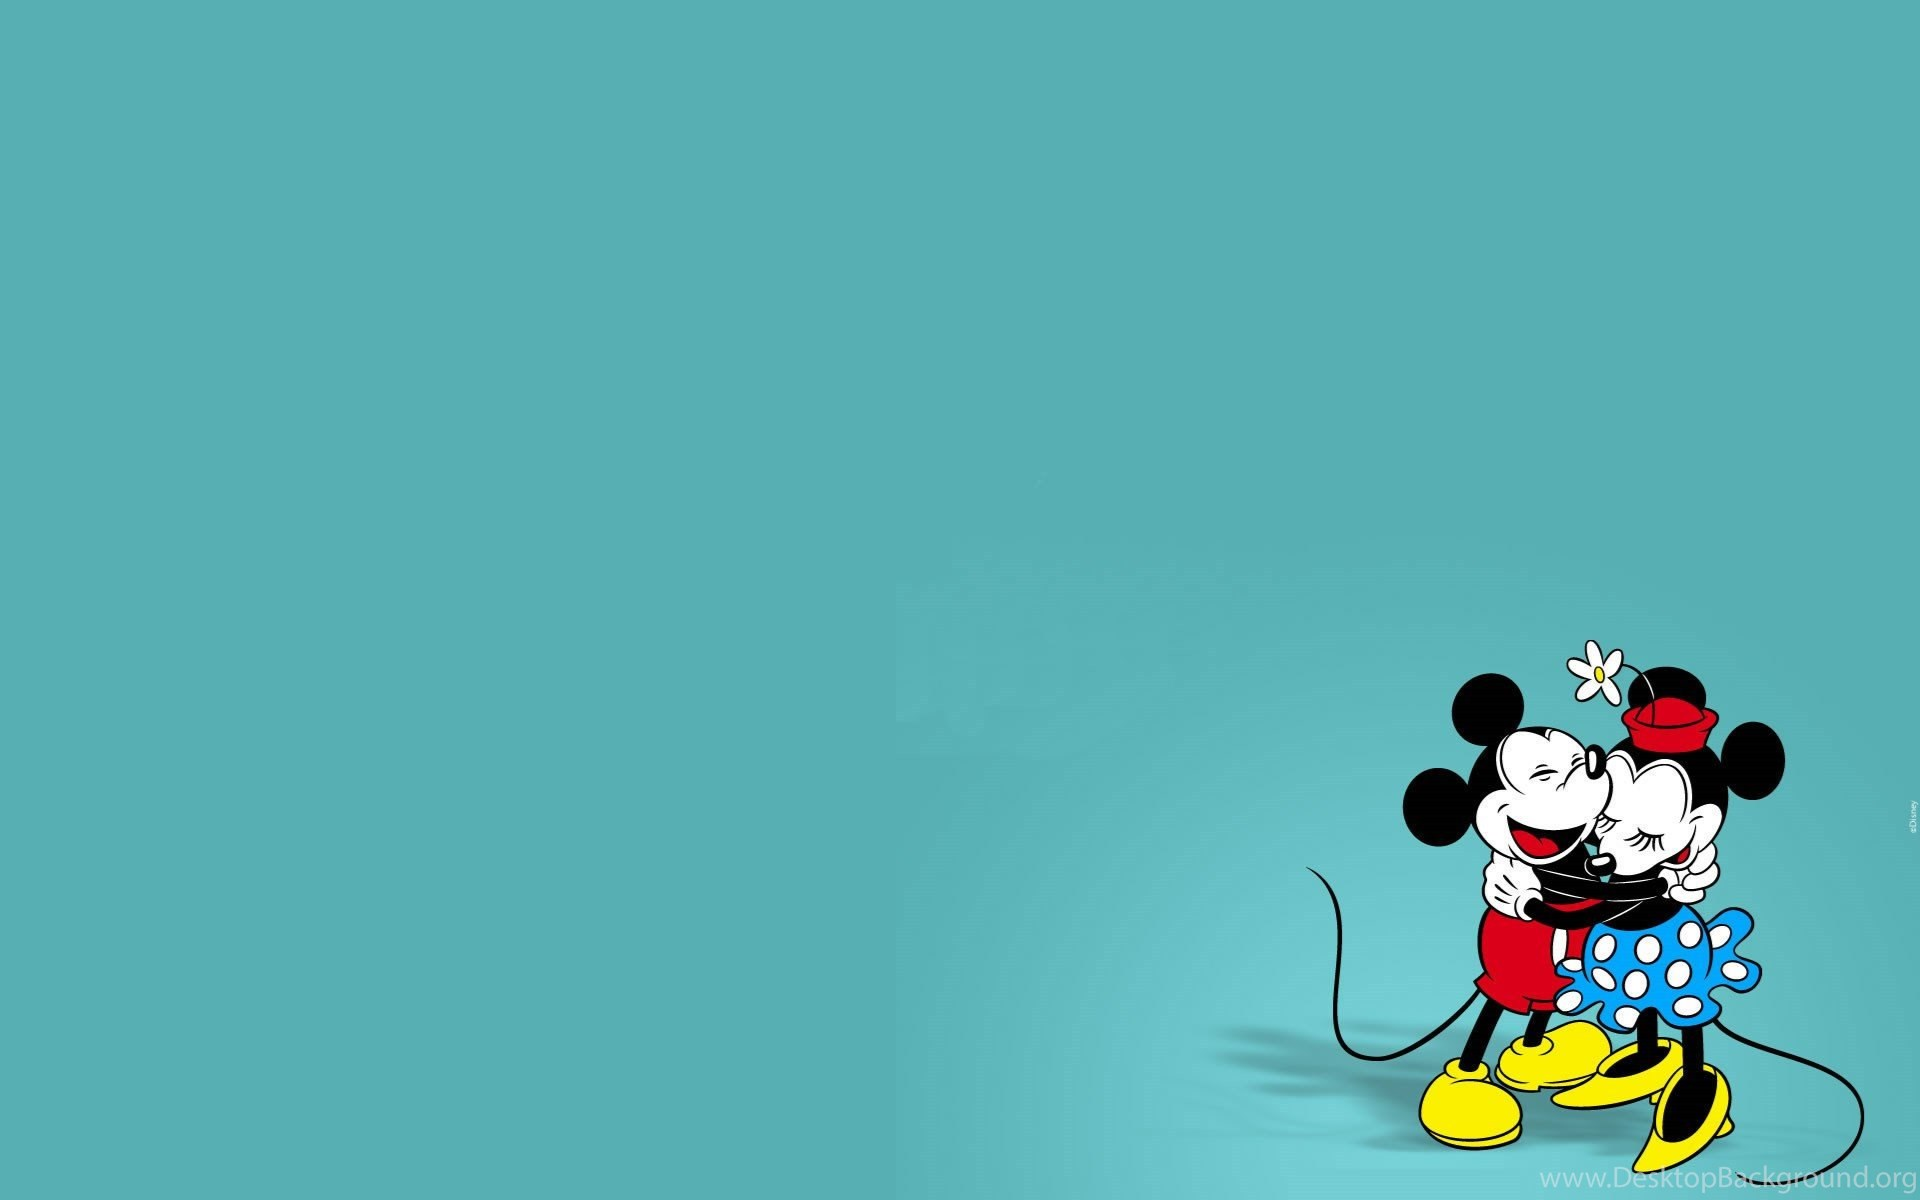 cartoon mickey mouse wallpapers desktop background